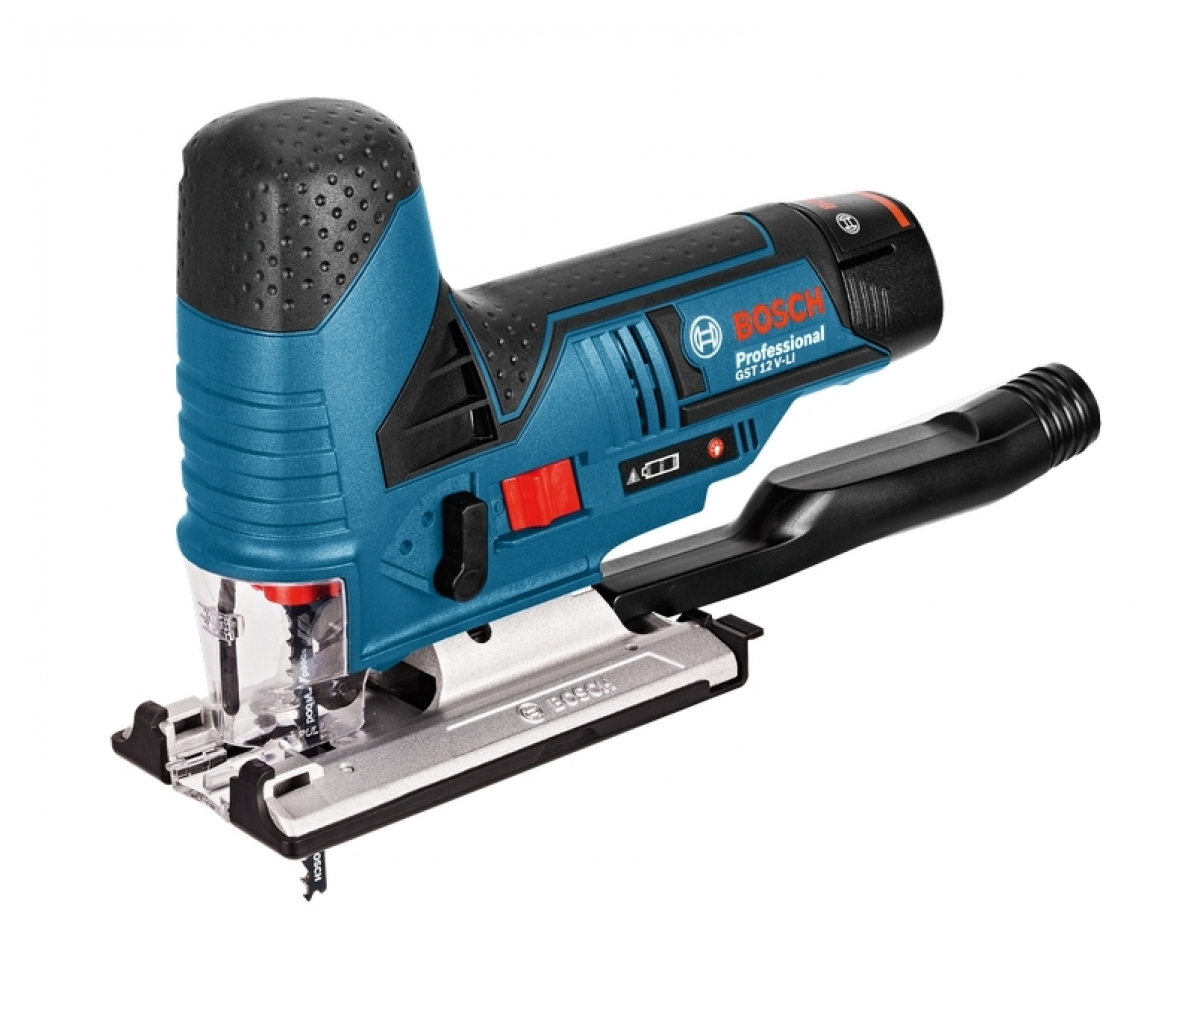 bosch gst 12v cordless jigsaw solo my power tools. Black Bedroom Furniture Sets. Home Design Ideas